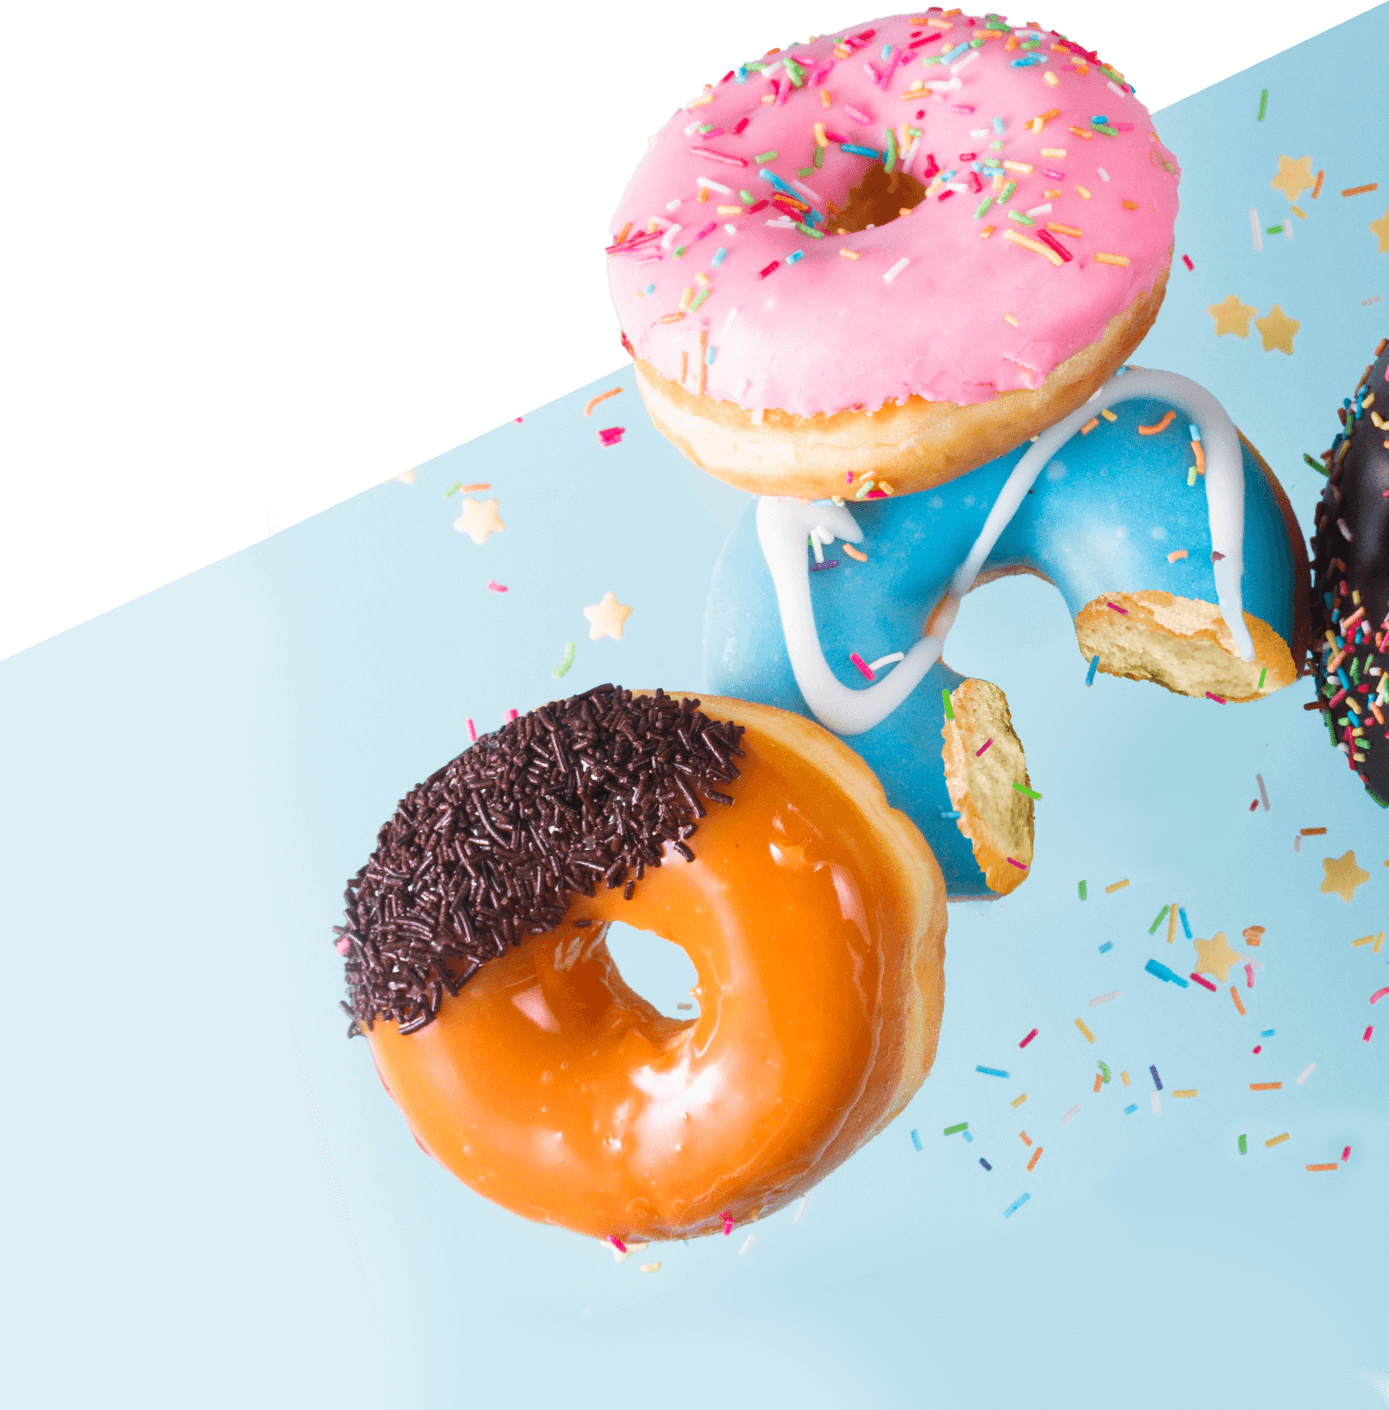 goedit choice of templates donut image